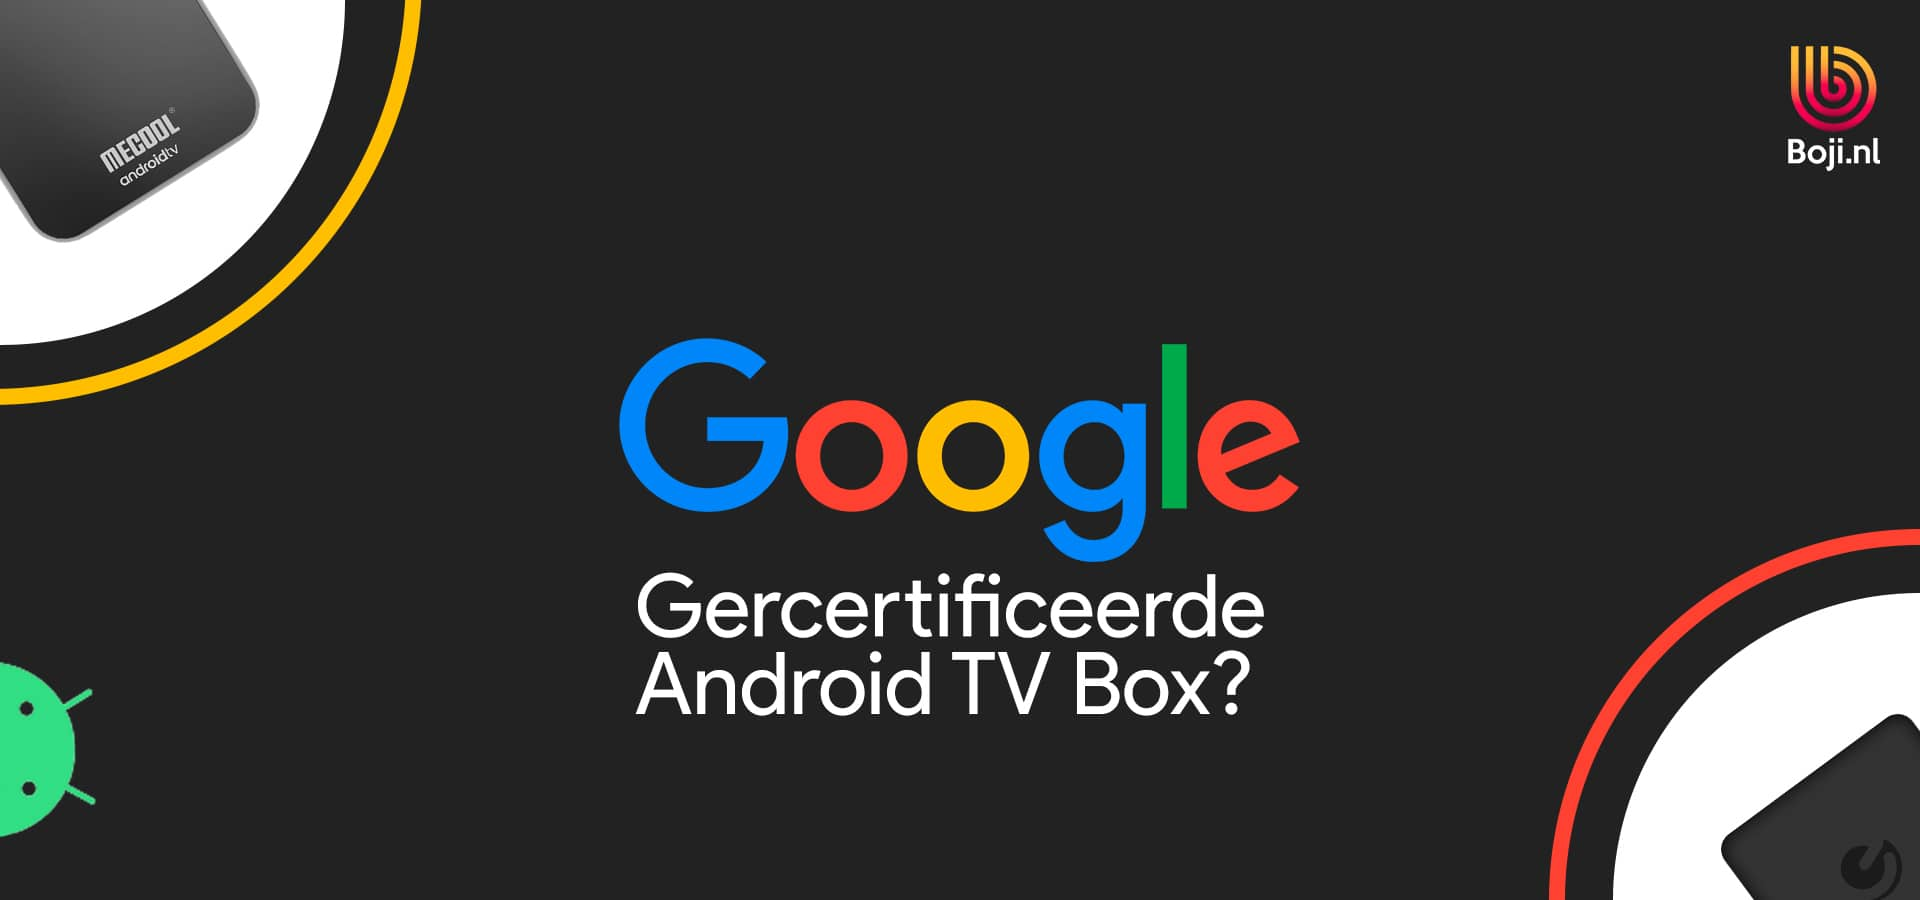 Wat is een Google gecertificeerde Android TV Box?